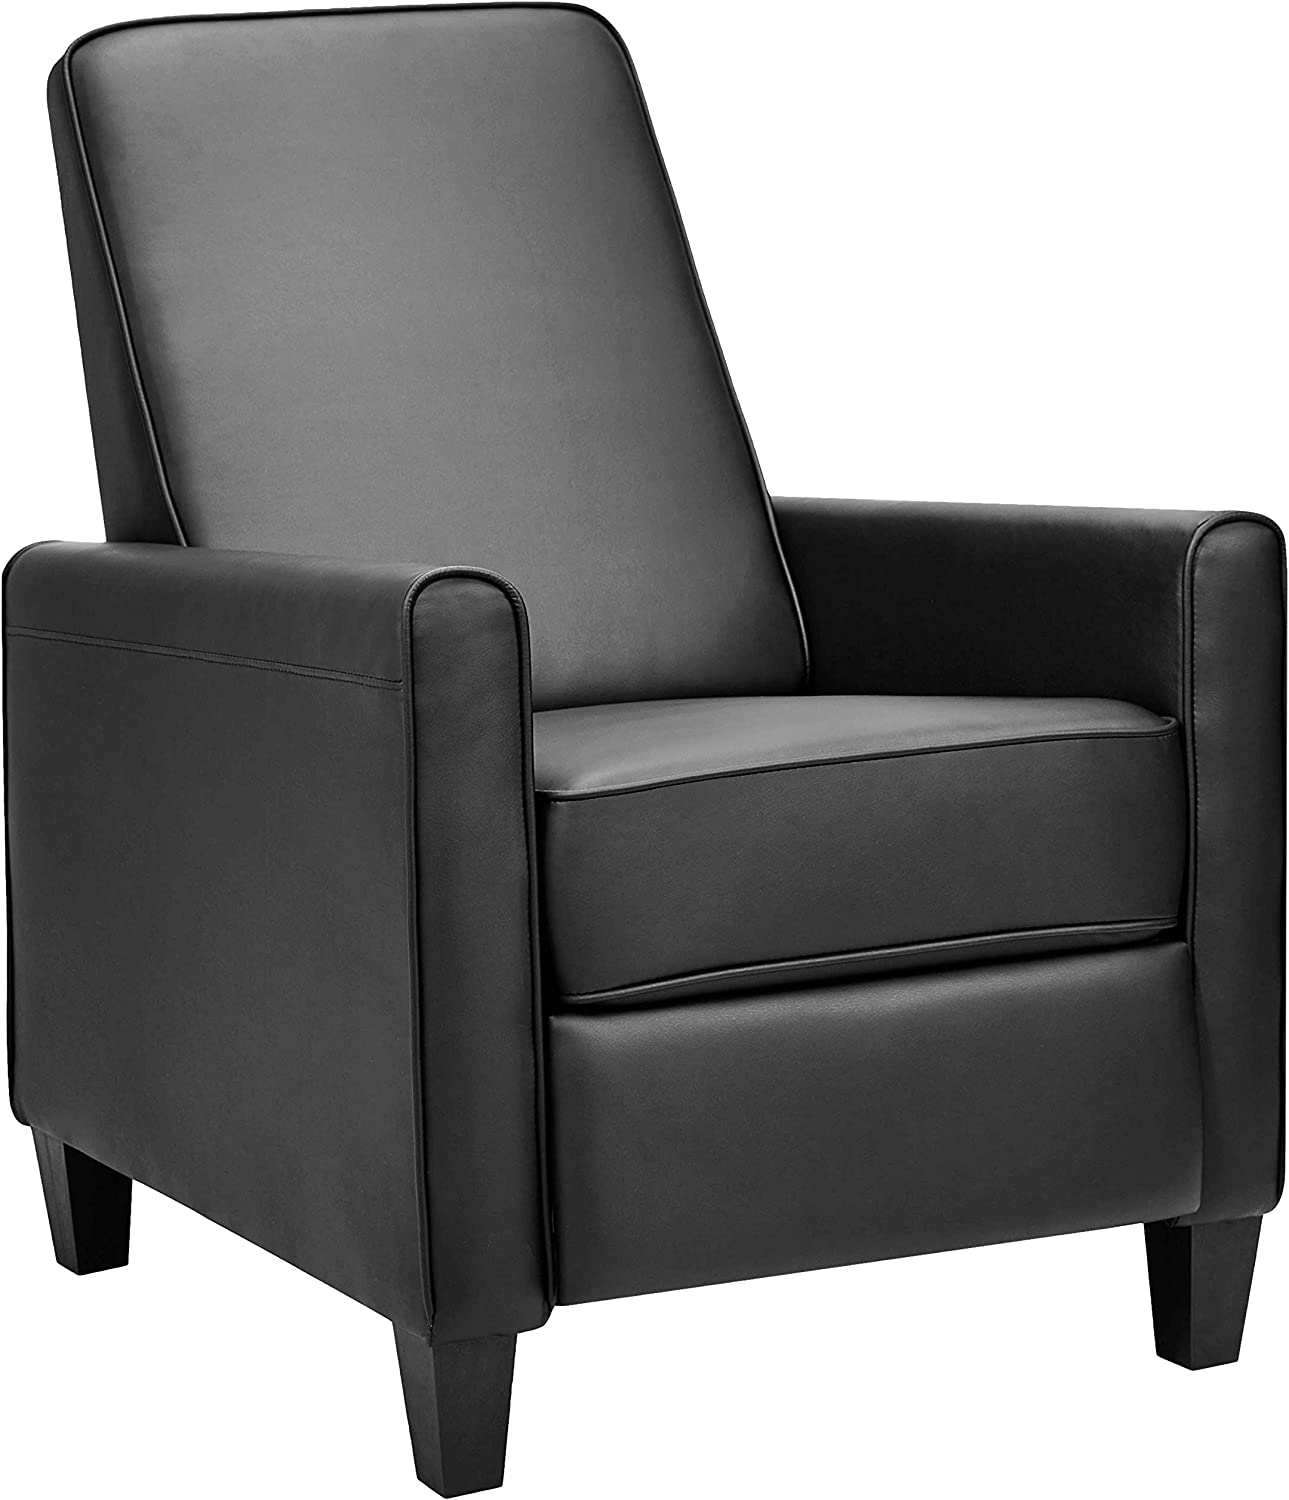 AmazonBasics Classic Faux Leather Arm Push Recliner Chair – Black